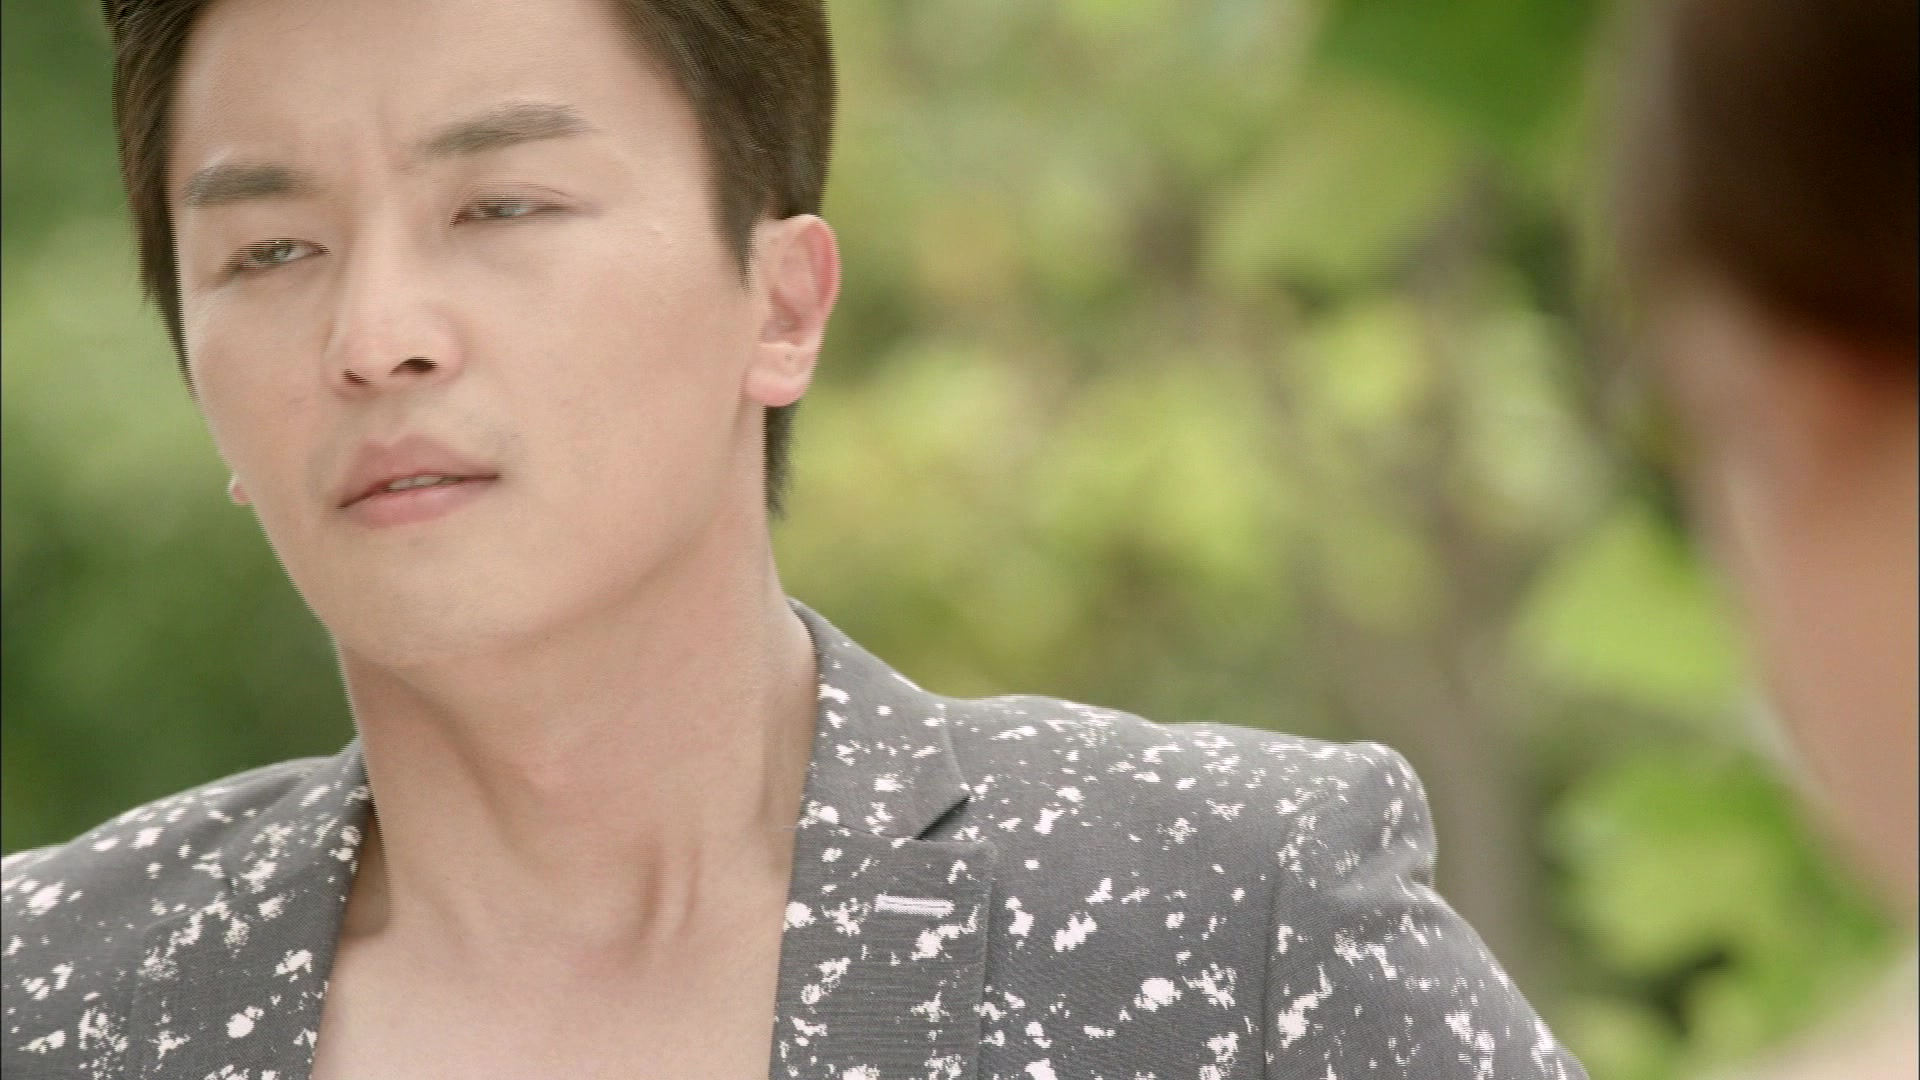 marriage not dating watch full online Watch marriage not dating episode 11 online at dramanicecom marriage not dating episode 3 marriage not dating episode 3 by dramapenchant this episode shows our hero that sometimes it's nice to not be alone.